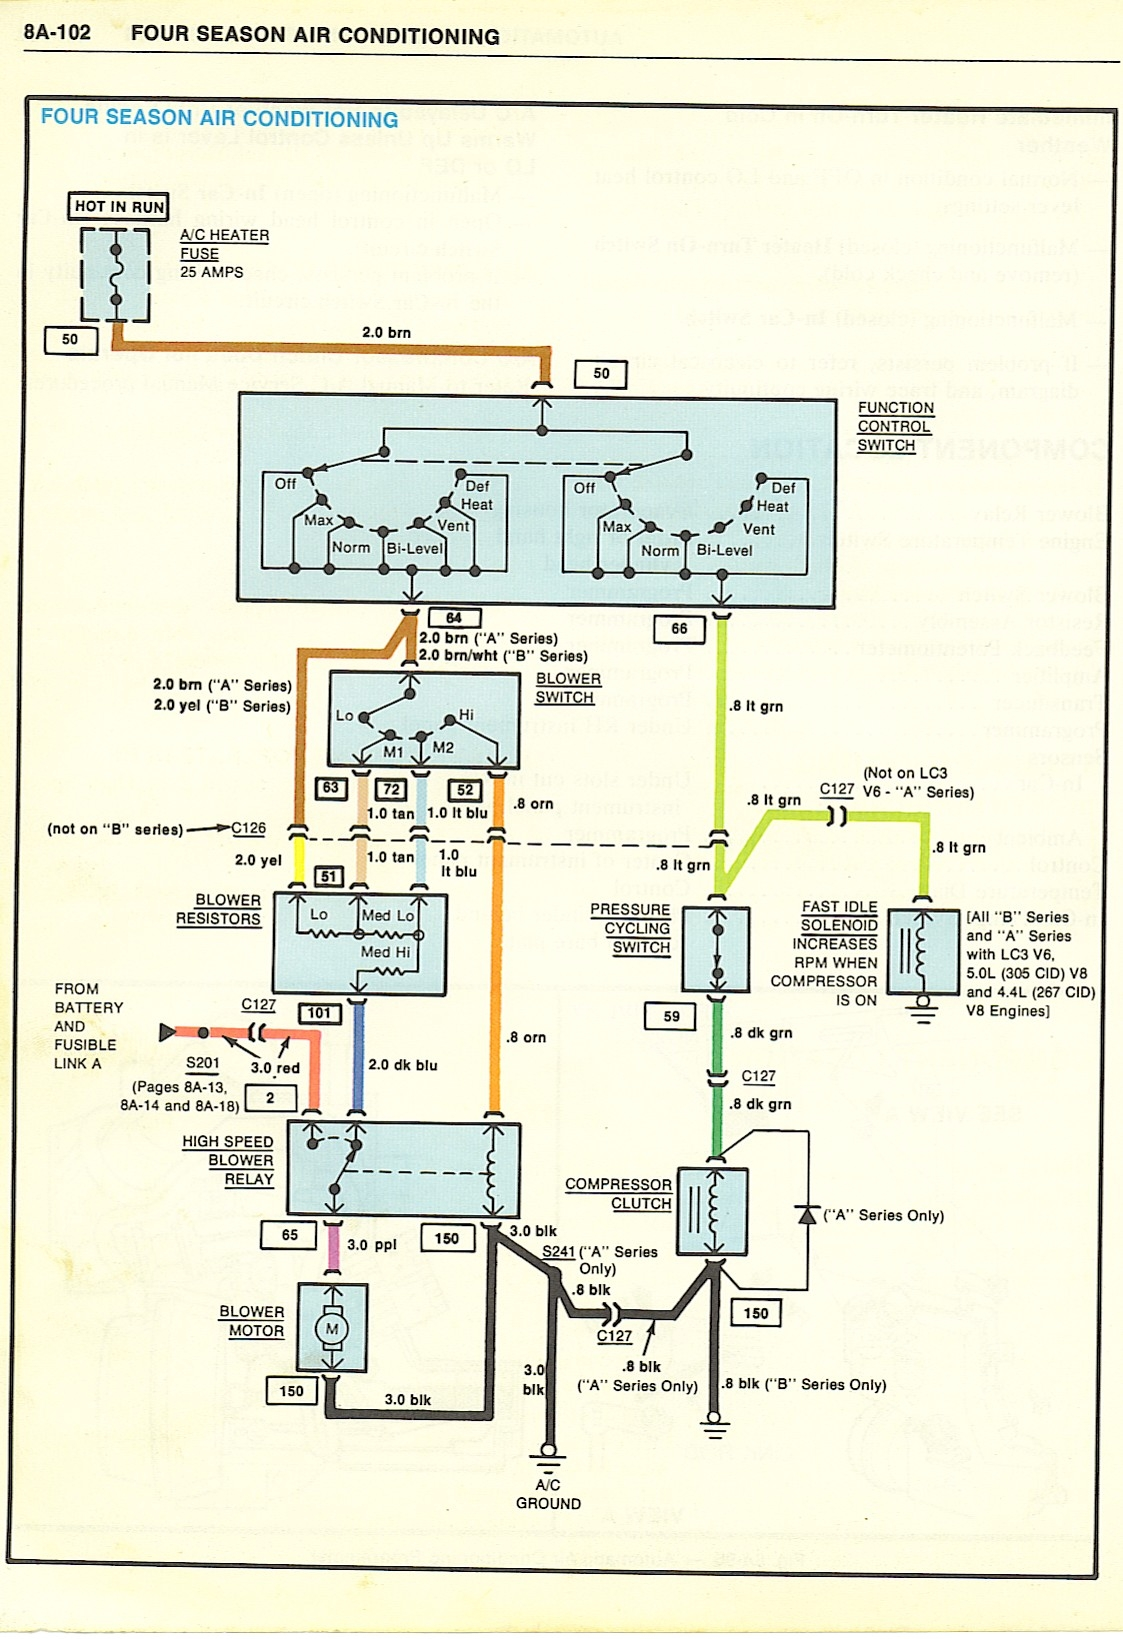 1968 FourSeasonAirConditioner 71 c10 wiring diagram 1970 gmc truck wiring diagram \u2022 free wiring  at honlapkeszites.co